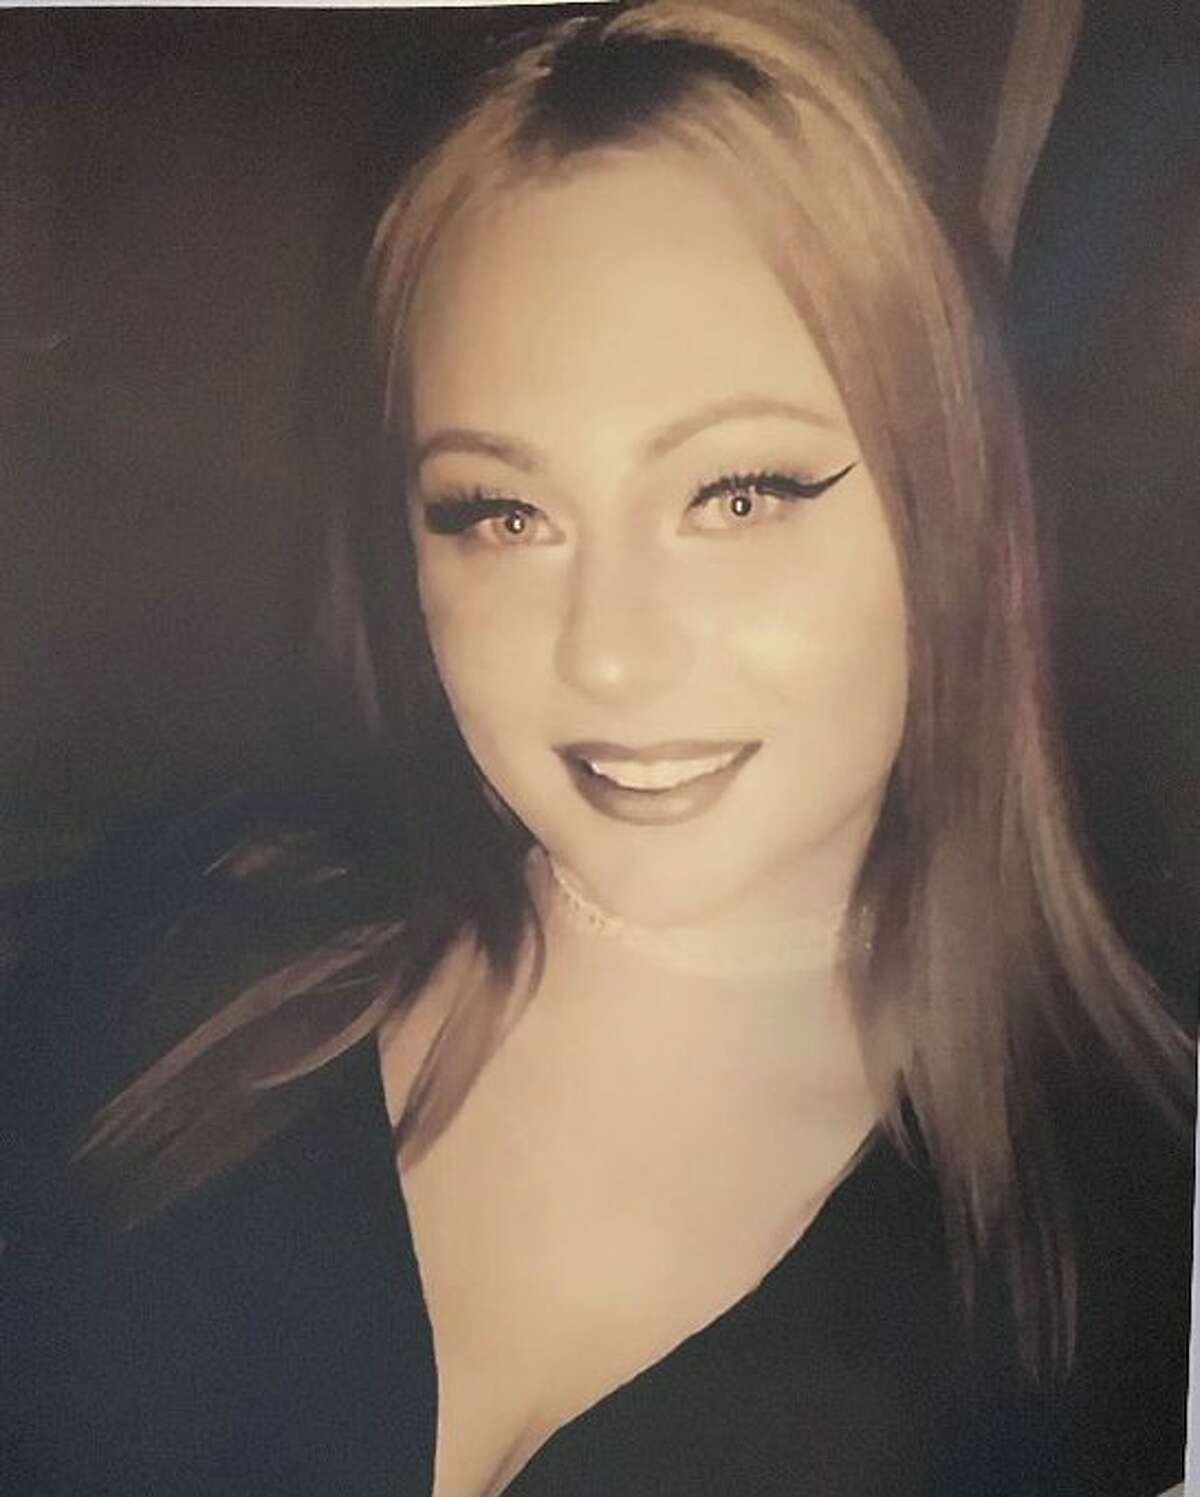 """Allyzibeth Lamont, 22, known as """"Ally,"""" who was murdered on Oct. 28, 2019 in the Local No. 9 deli in Johnstown where she worked. Her boss, Georgios Kakavelos, 52, is facing life in prison without parole after being convicted of her 1st-degree murder and all other charges."""